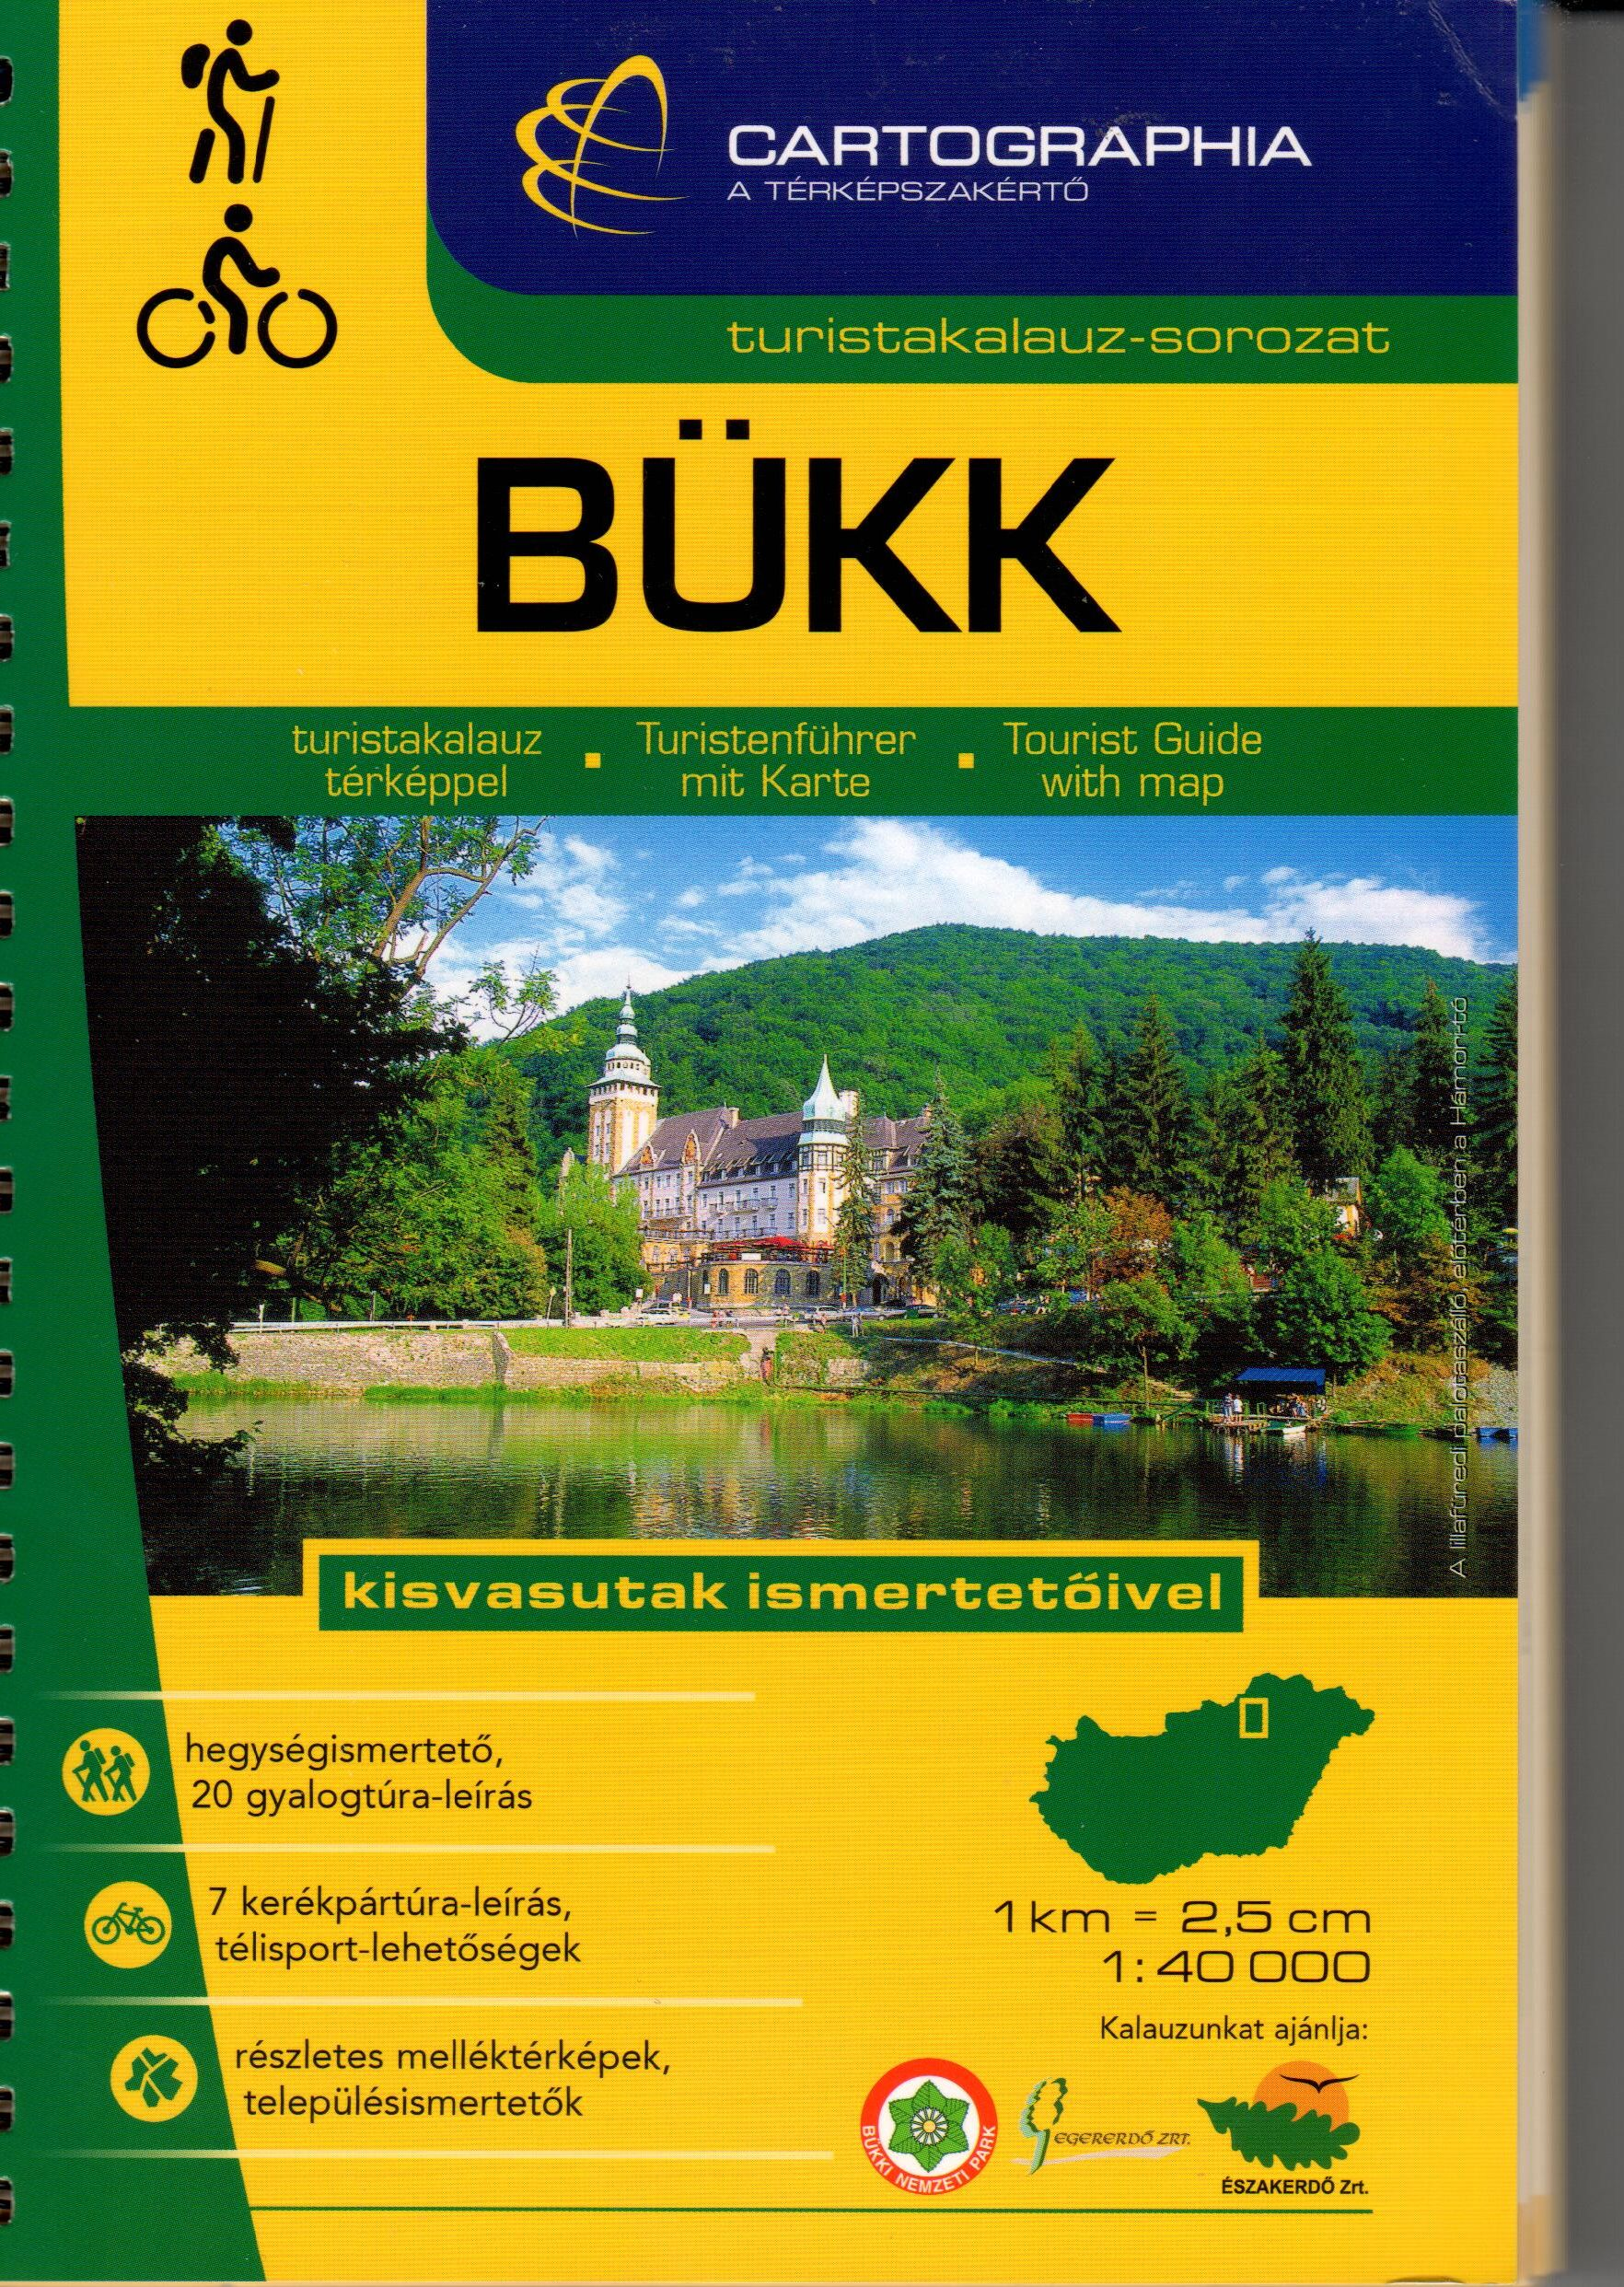 Detailed tourist info in Hungarian